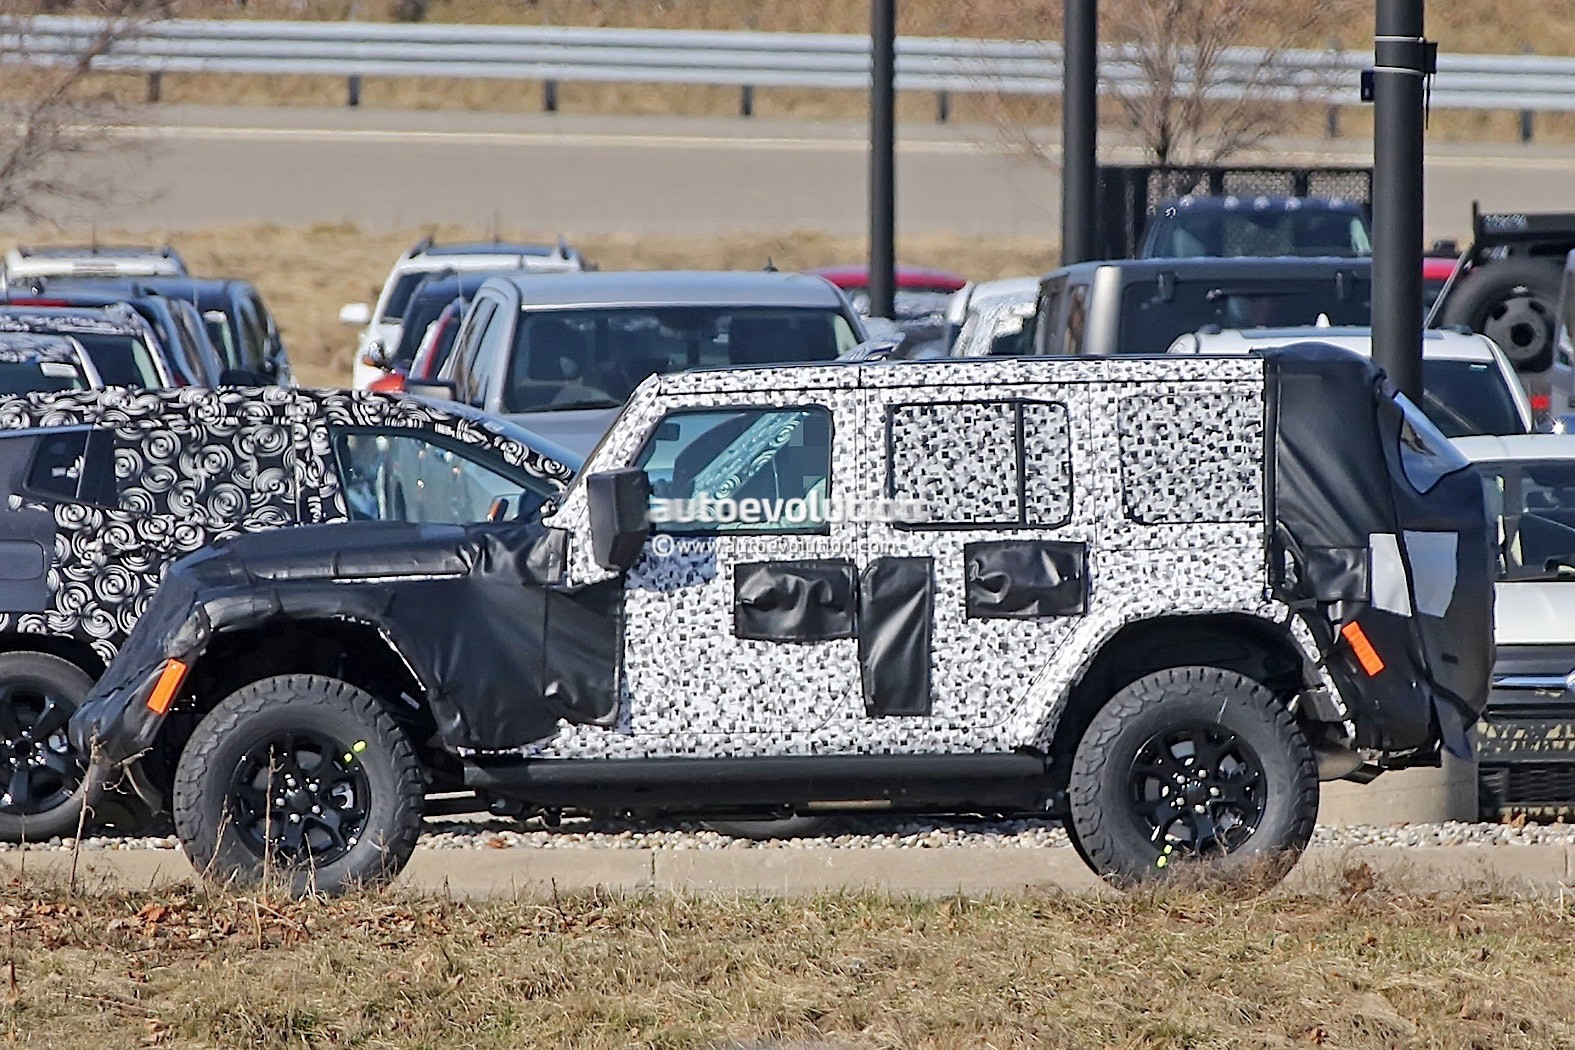 2018 Jl Wrangler Unlimited Rubicon Leaked Has Fully Removable Roof Jeep Leaking